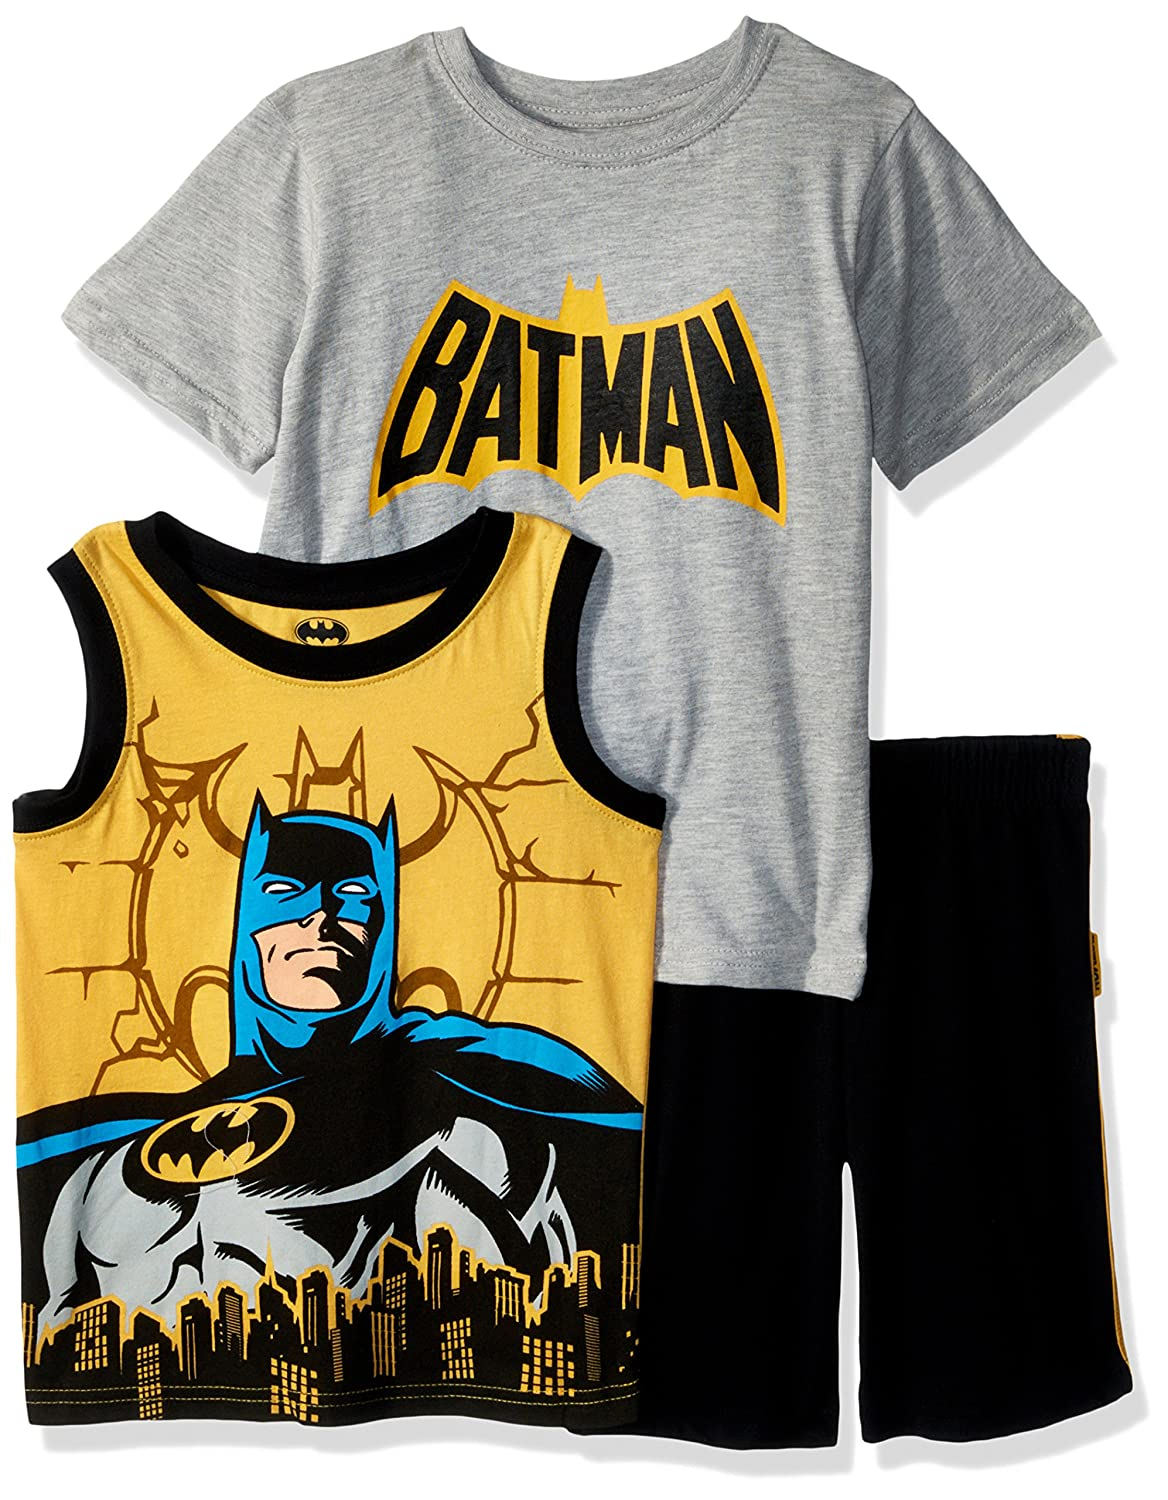 2T 8WB6714 Warner Brothers Boys Toddler Batman 3 Piece Short Set Grey